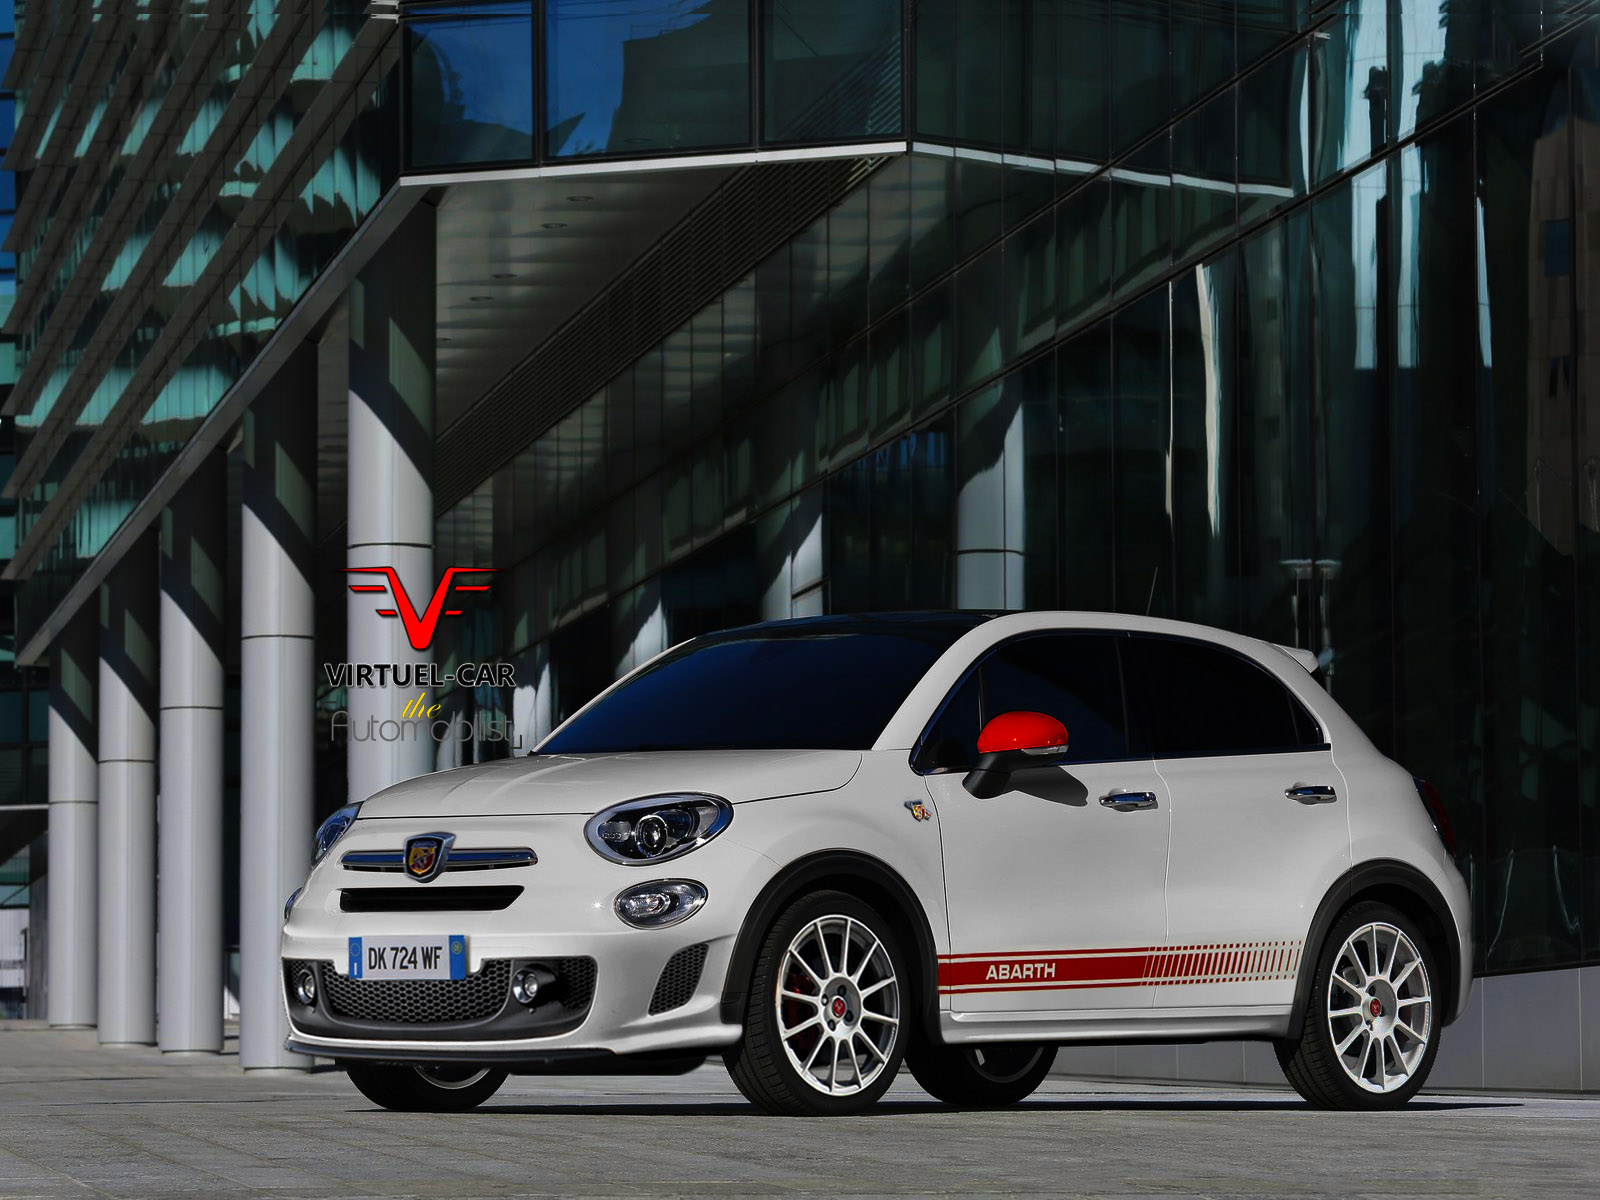 Fiat X Abarth Rendering Shows Upcoming Hot Crossover